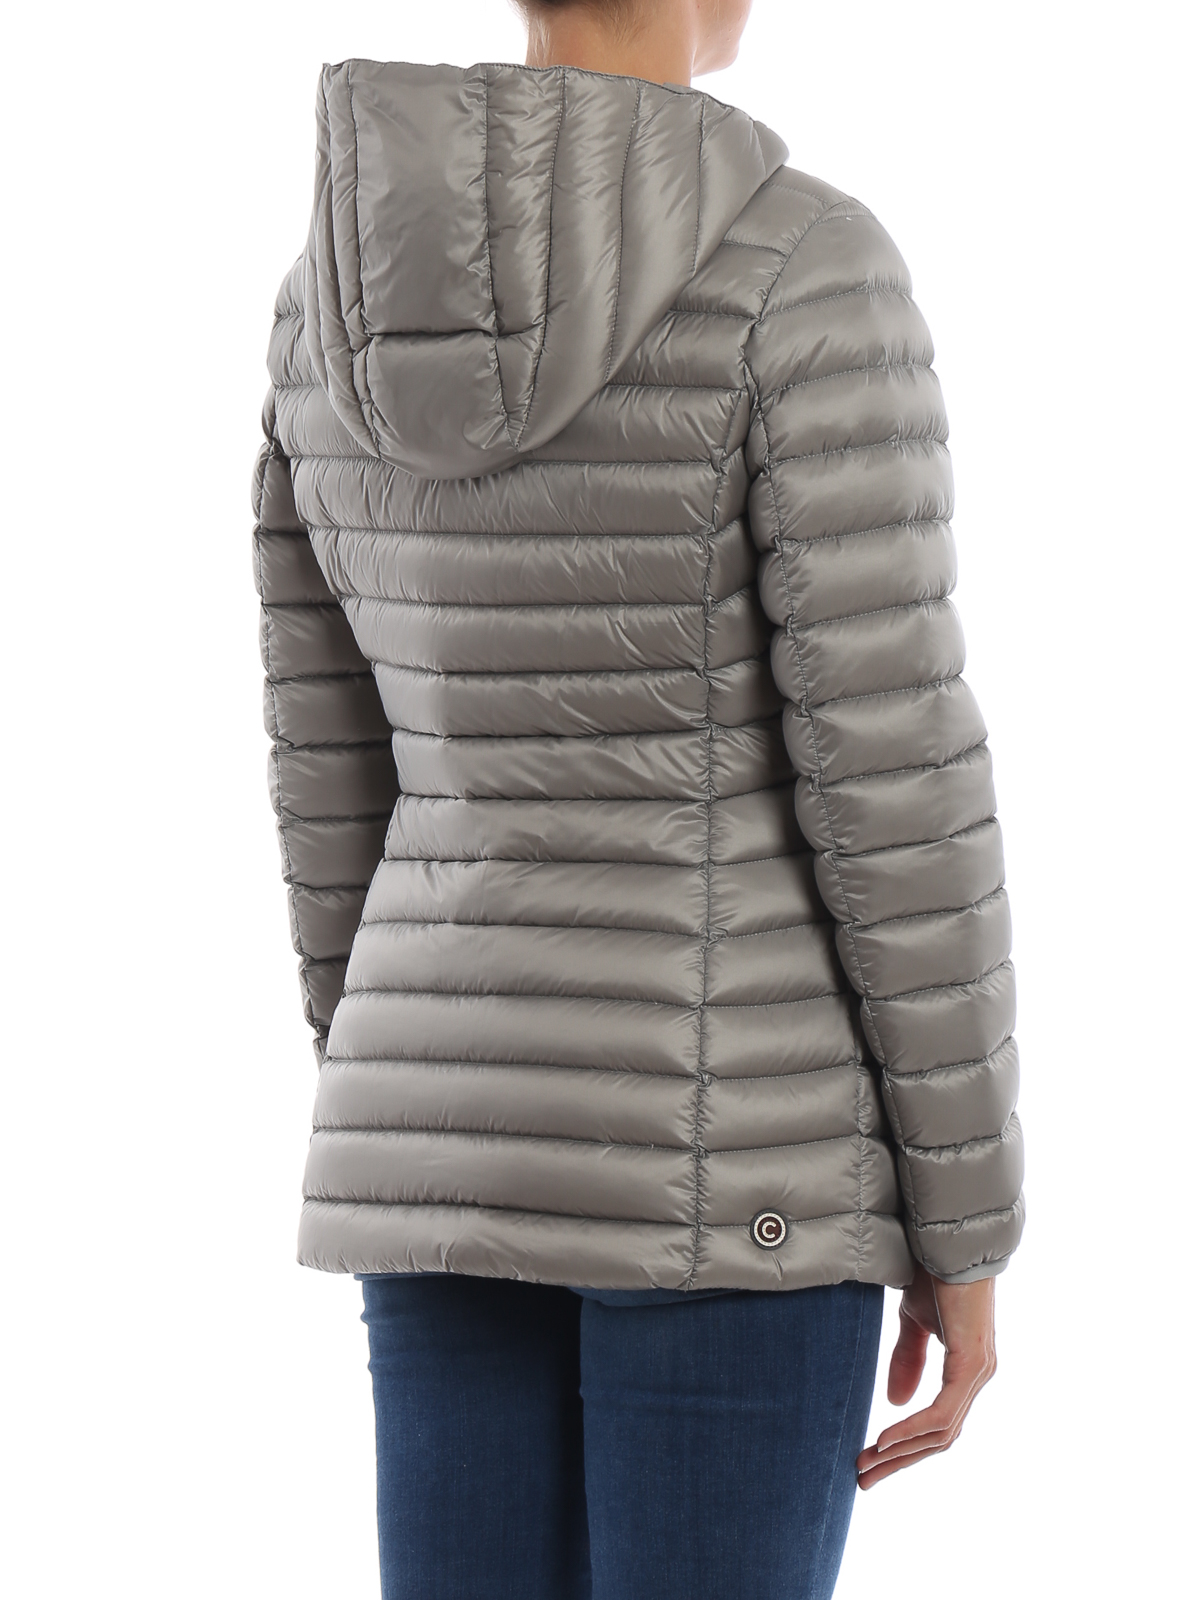 91b641bdd3b Colmar Originals - Place shadow grey hooded puffer jacket - padded ...